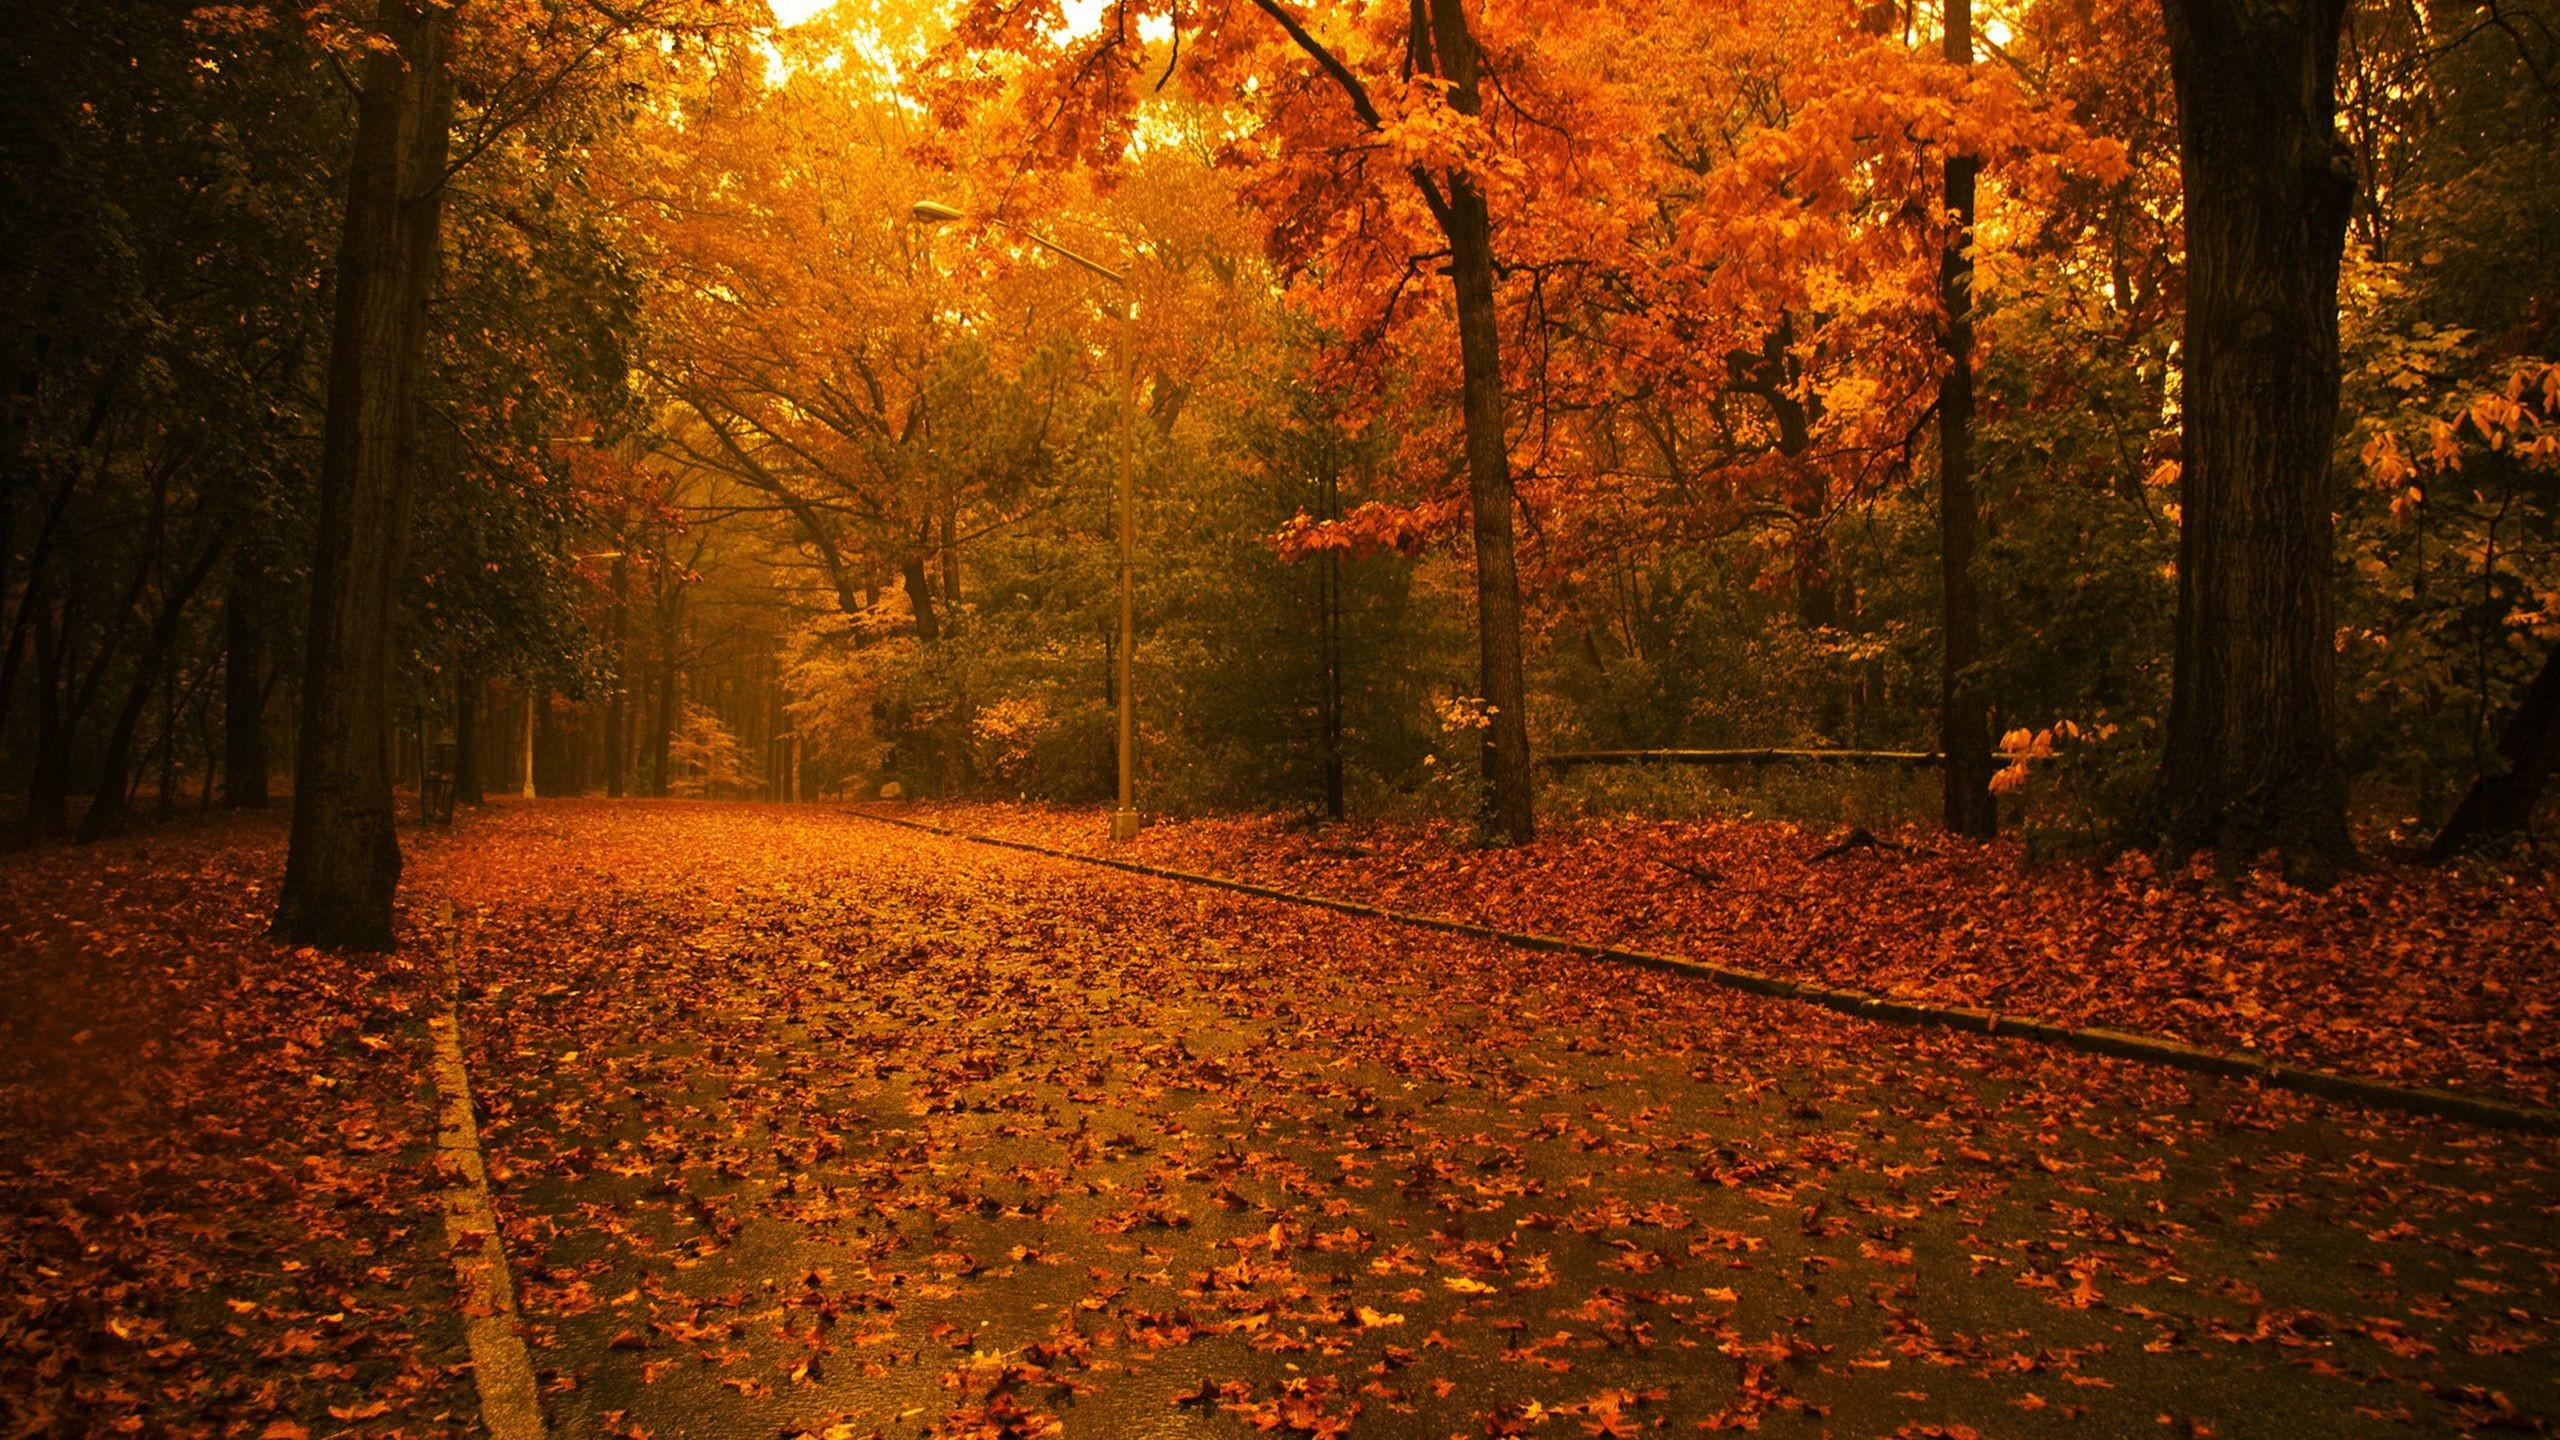 Landscapes Nature Trees Autumn Season Forest Fallen Leaves Fresh New Hd Wallpaper